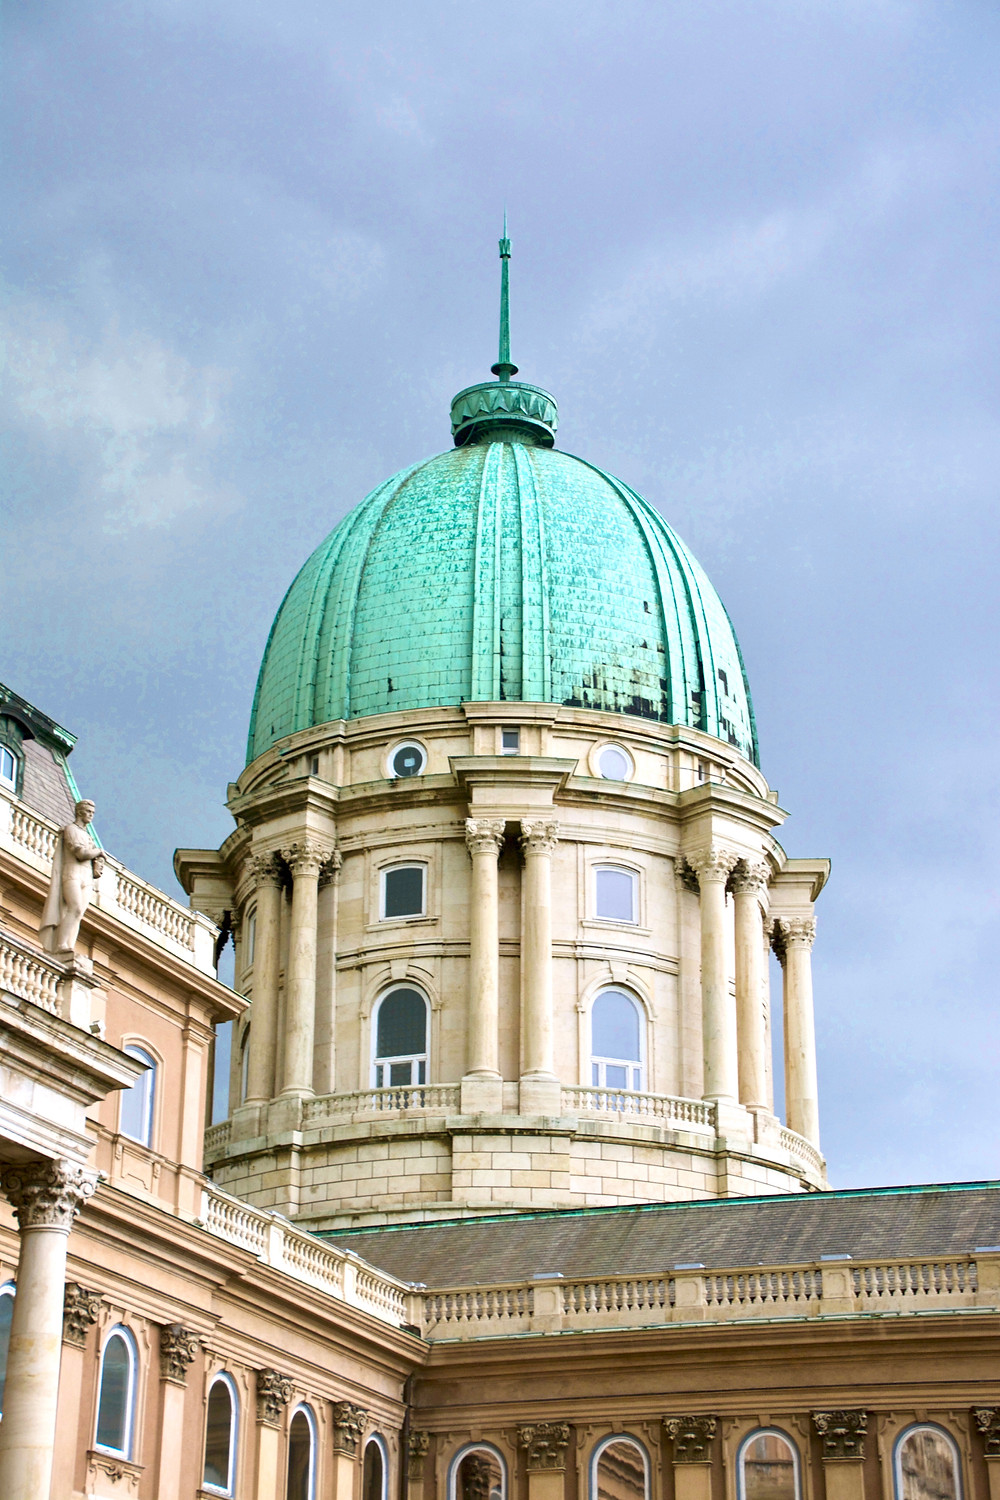 The turquoise-roofed dome of the Buda Castle, Budapest